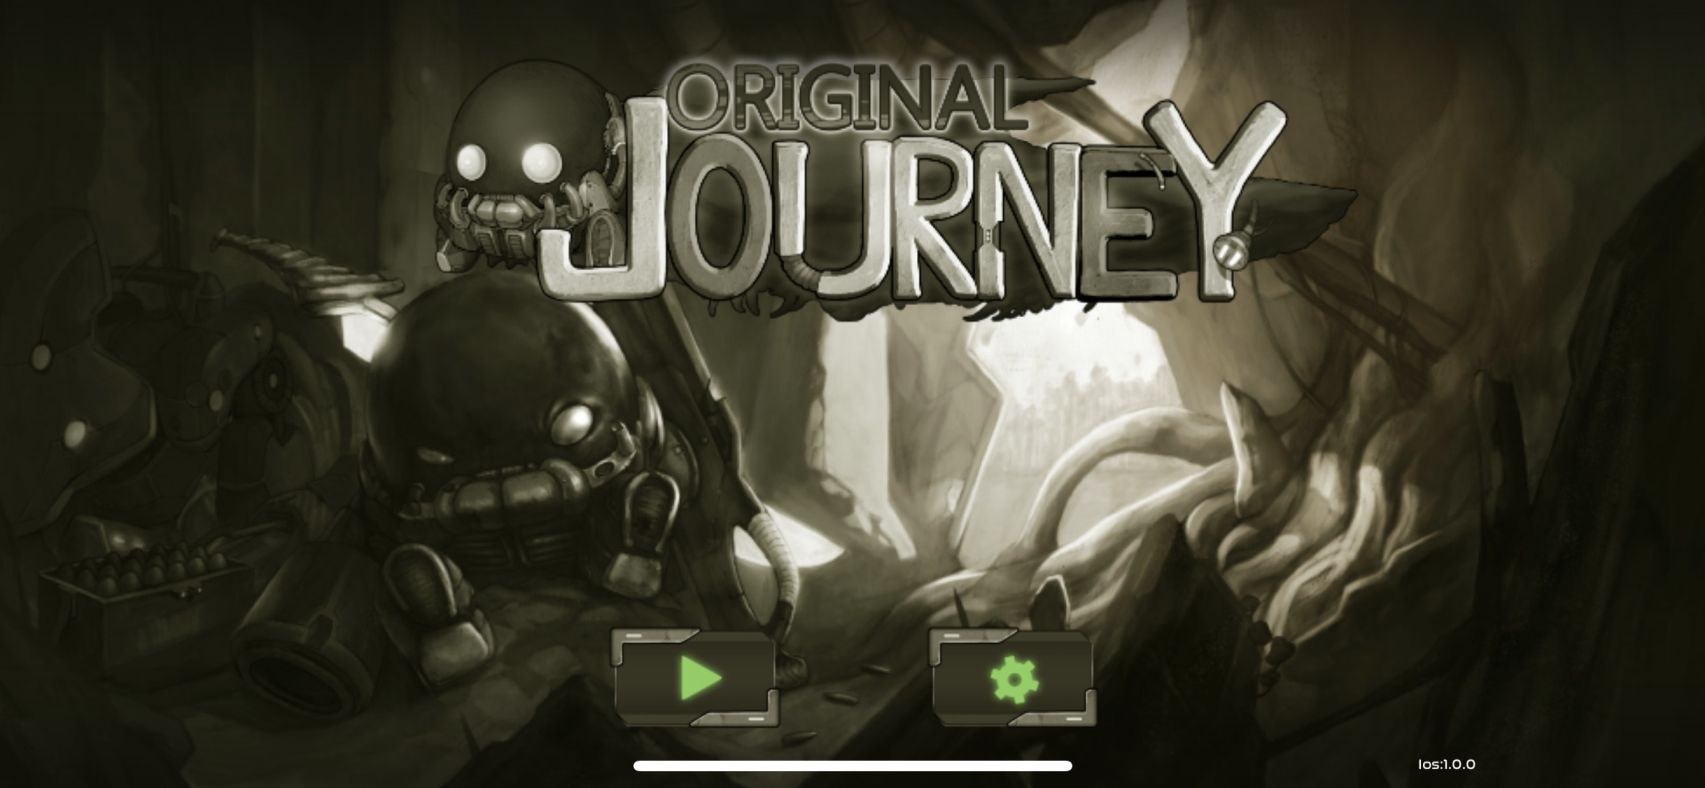 Original Journey (copie d'écran 1 sur iPhone / iPad)